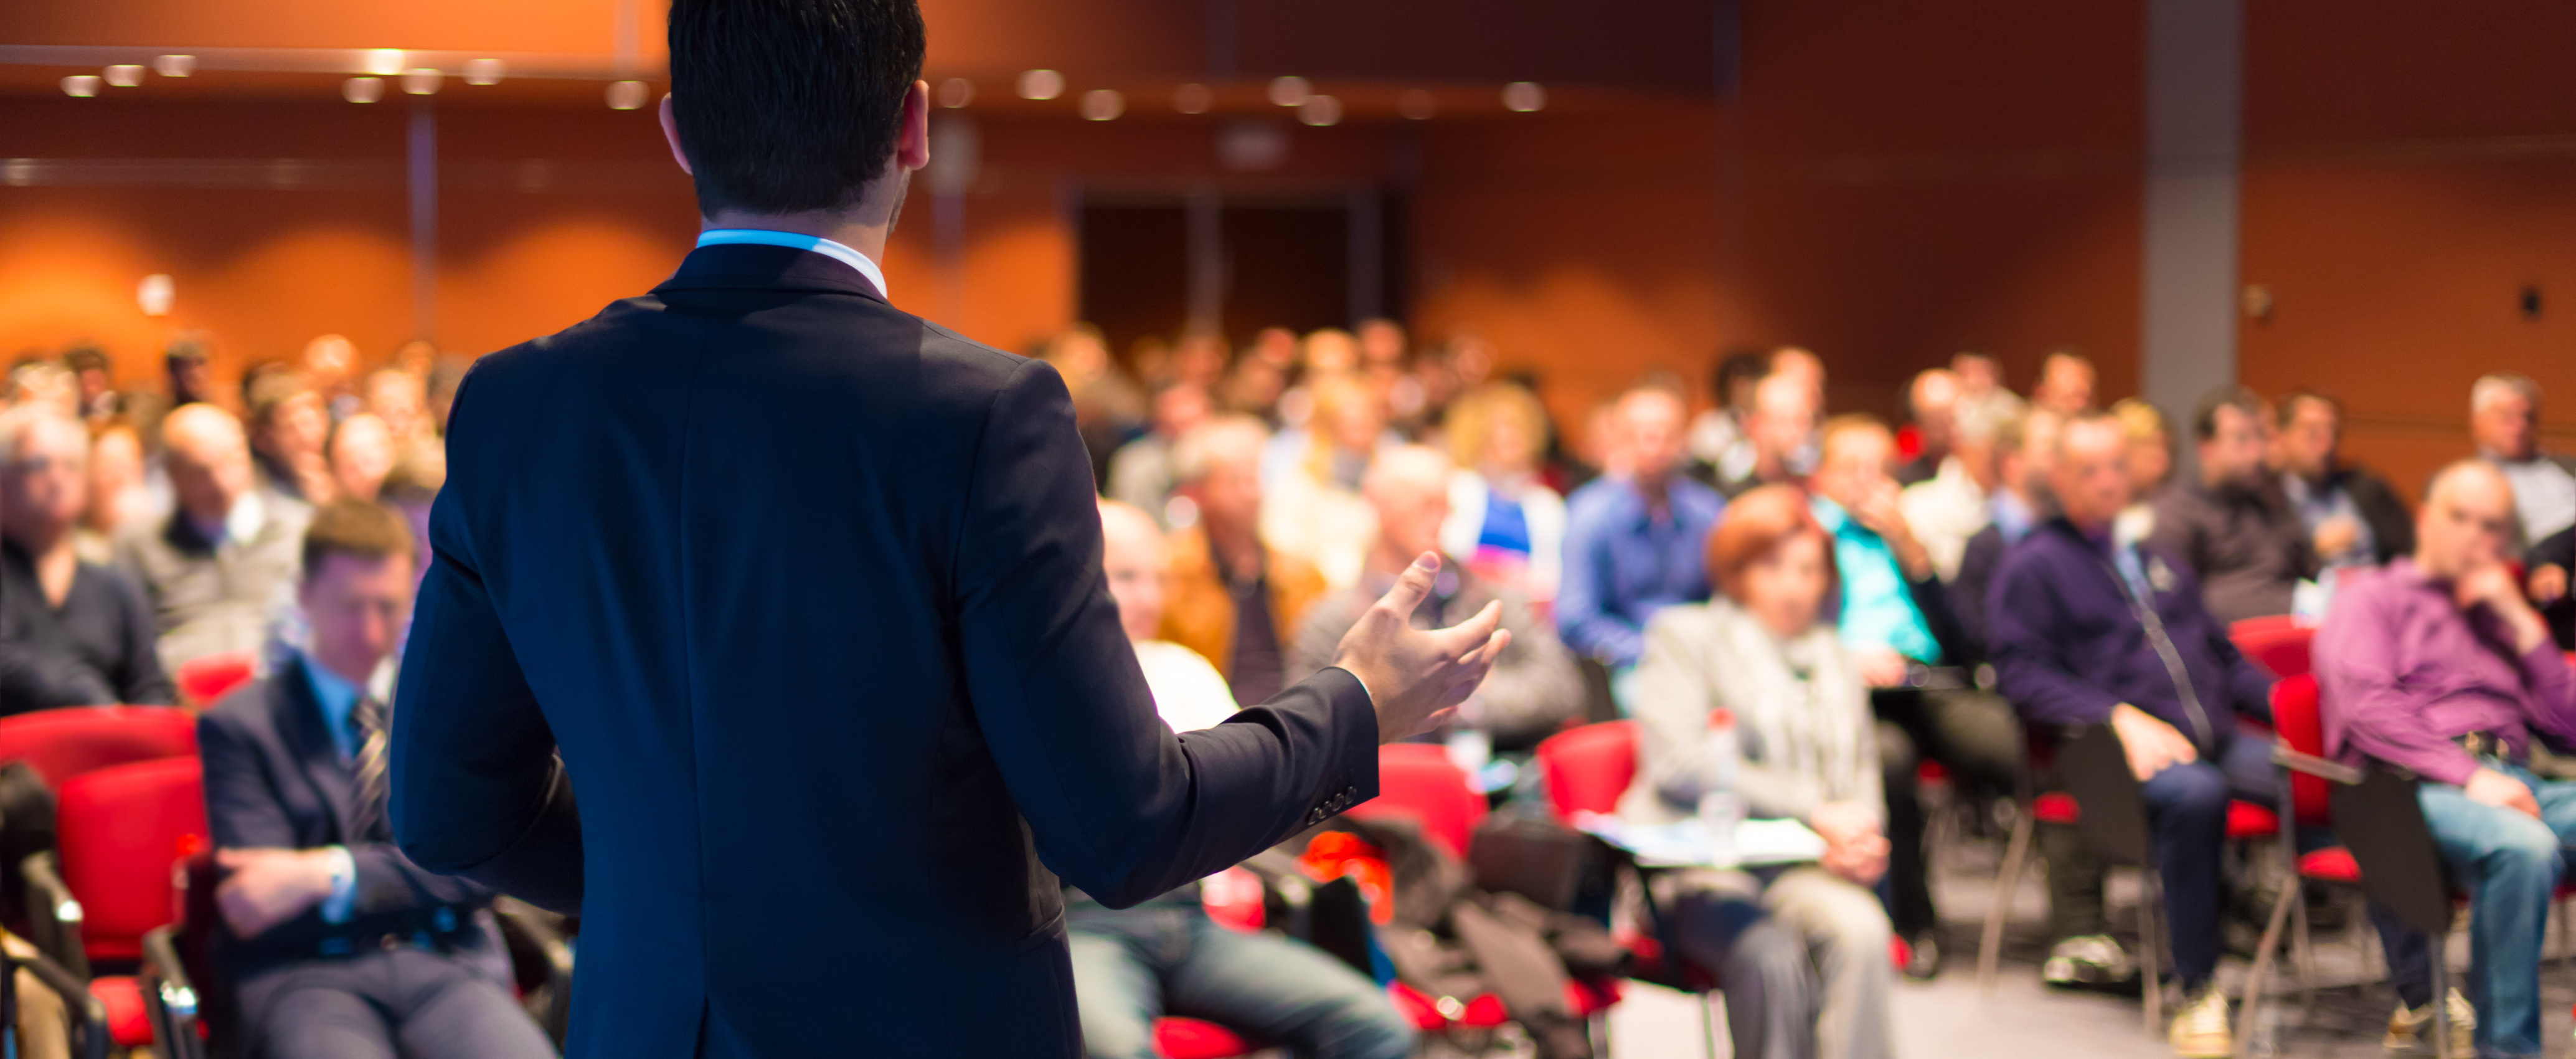 professional networking plan at a conference